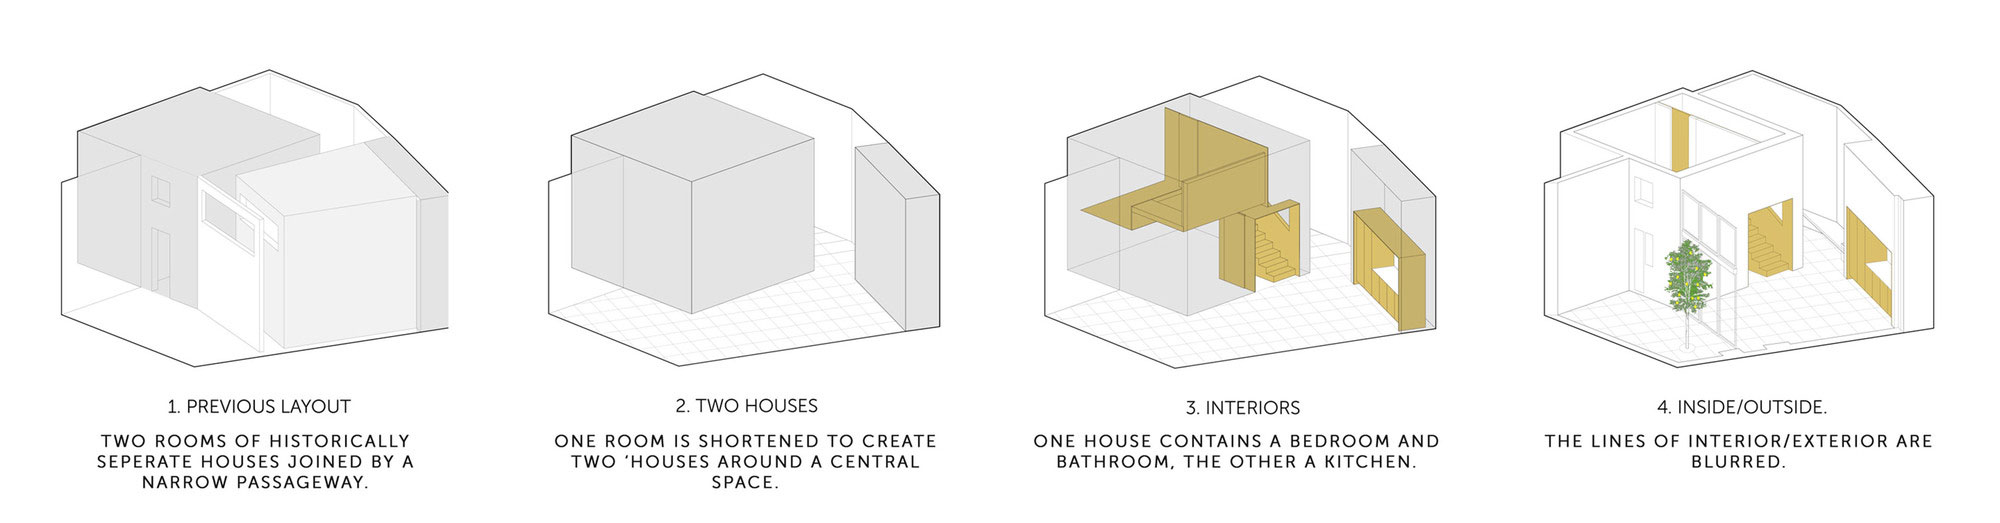 Adjusting a Mish-Mash of Small Rooms and Corridors into Jaffa Garden Apartment by Itai Palti-15